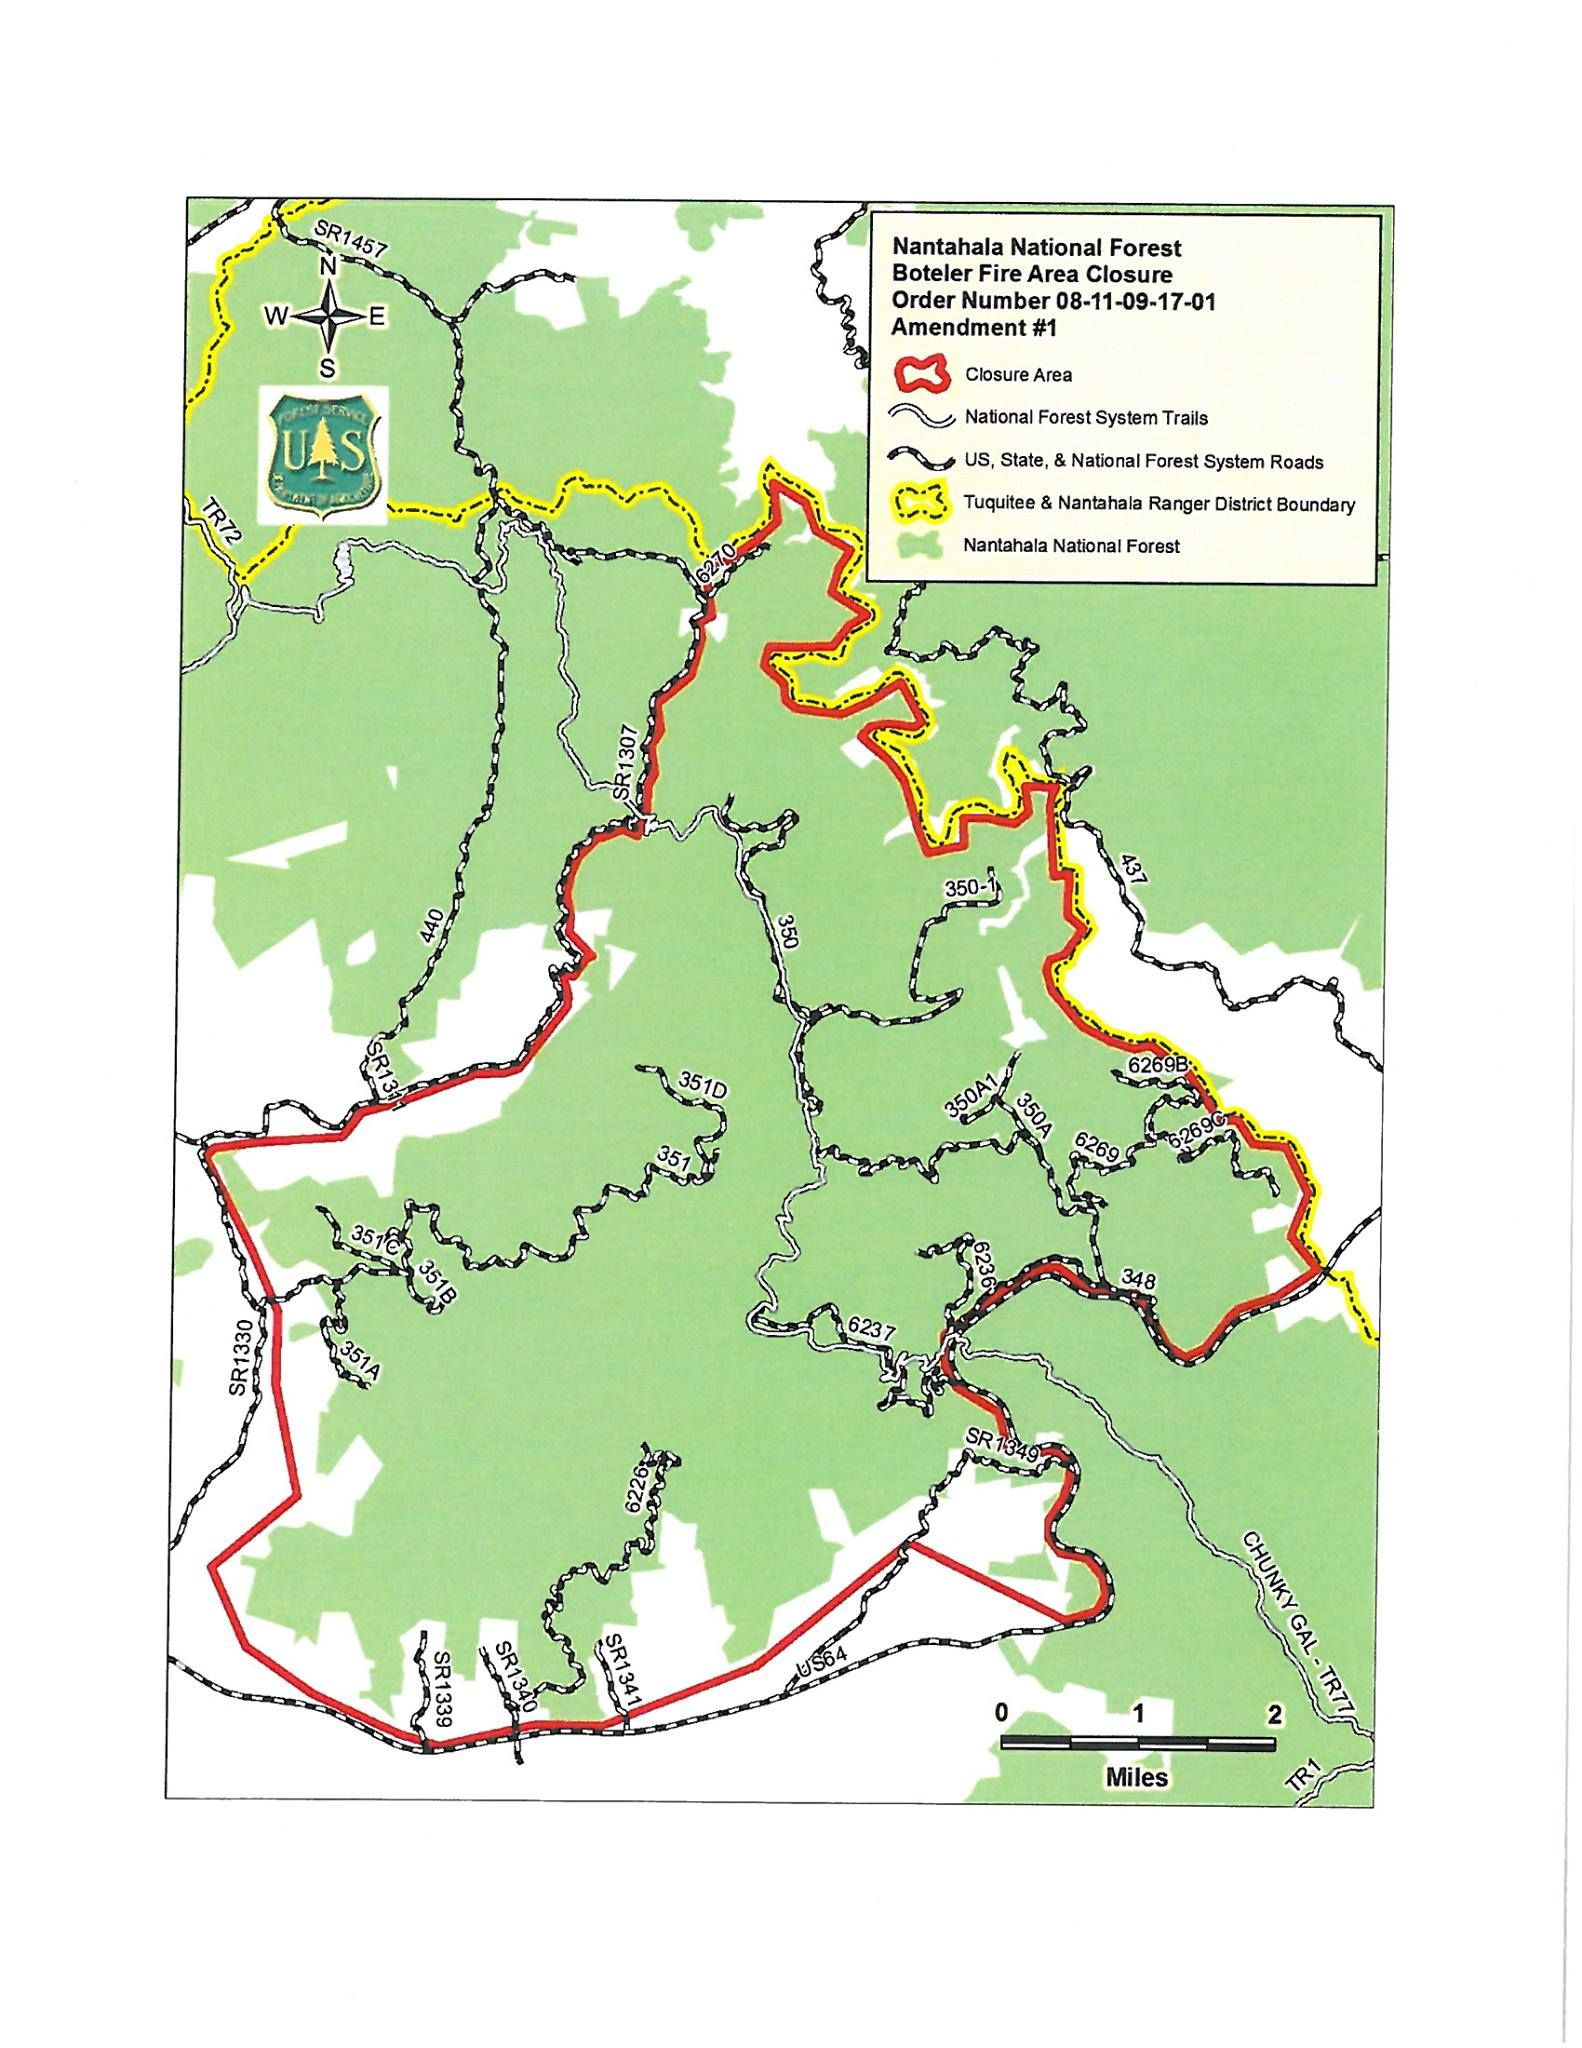 Nantahala National Forest Closure Area Map - Areas closed to ...